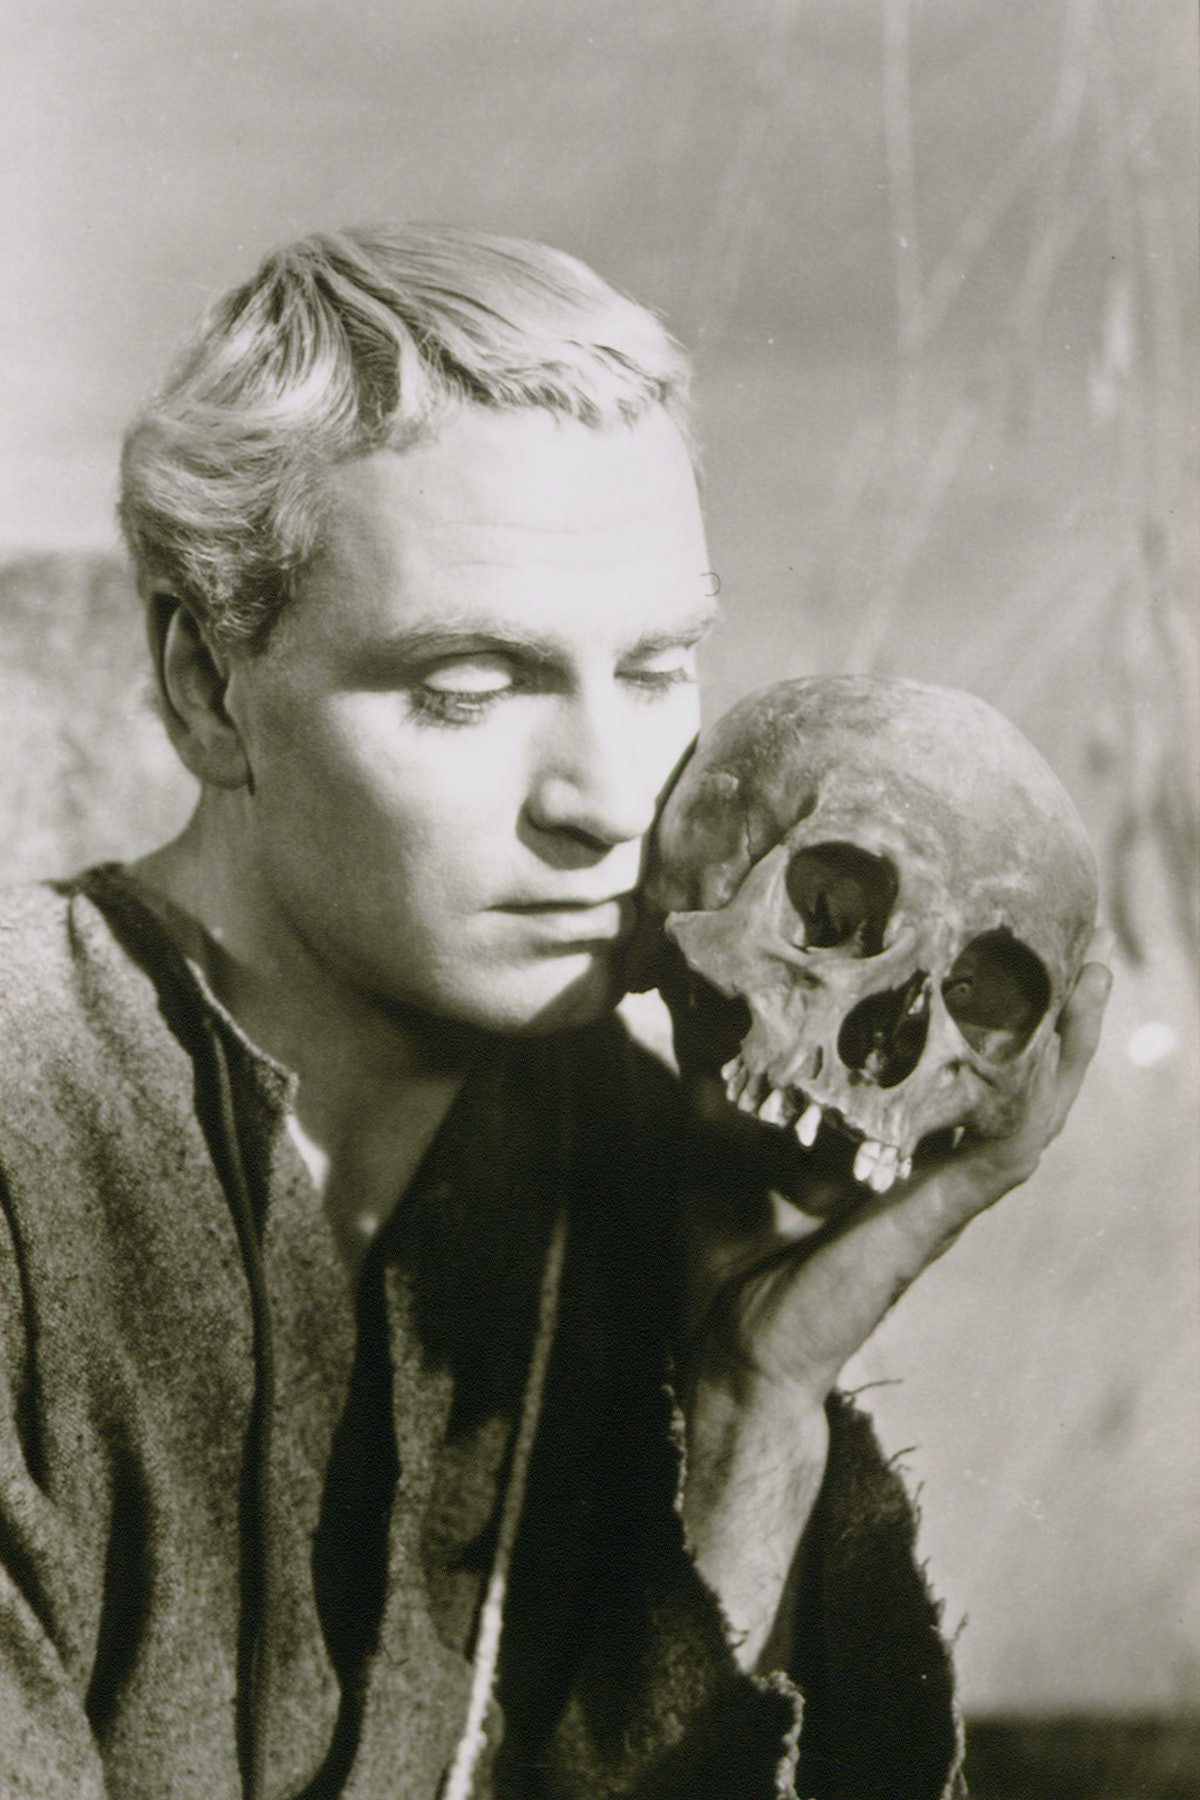 British actor Laurence Olivier on the set of Hamlet, based on the play by William Shakespeare and di...